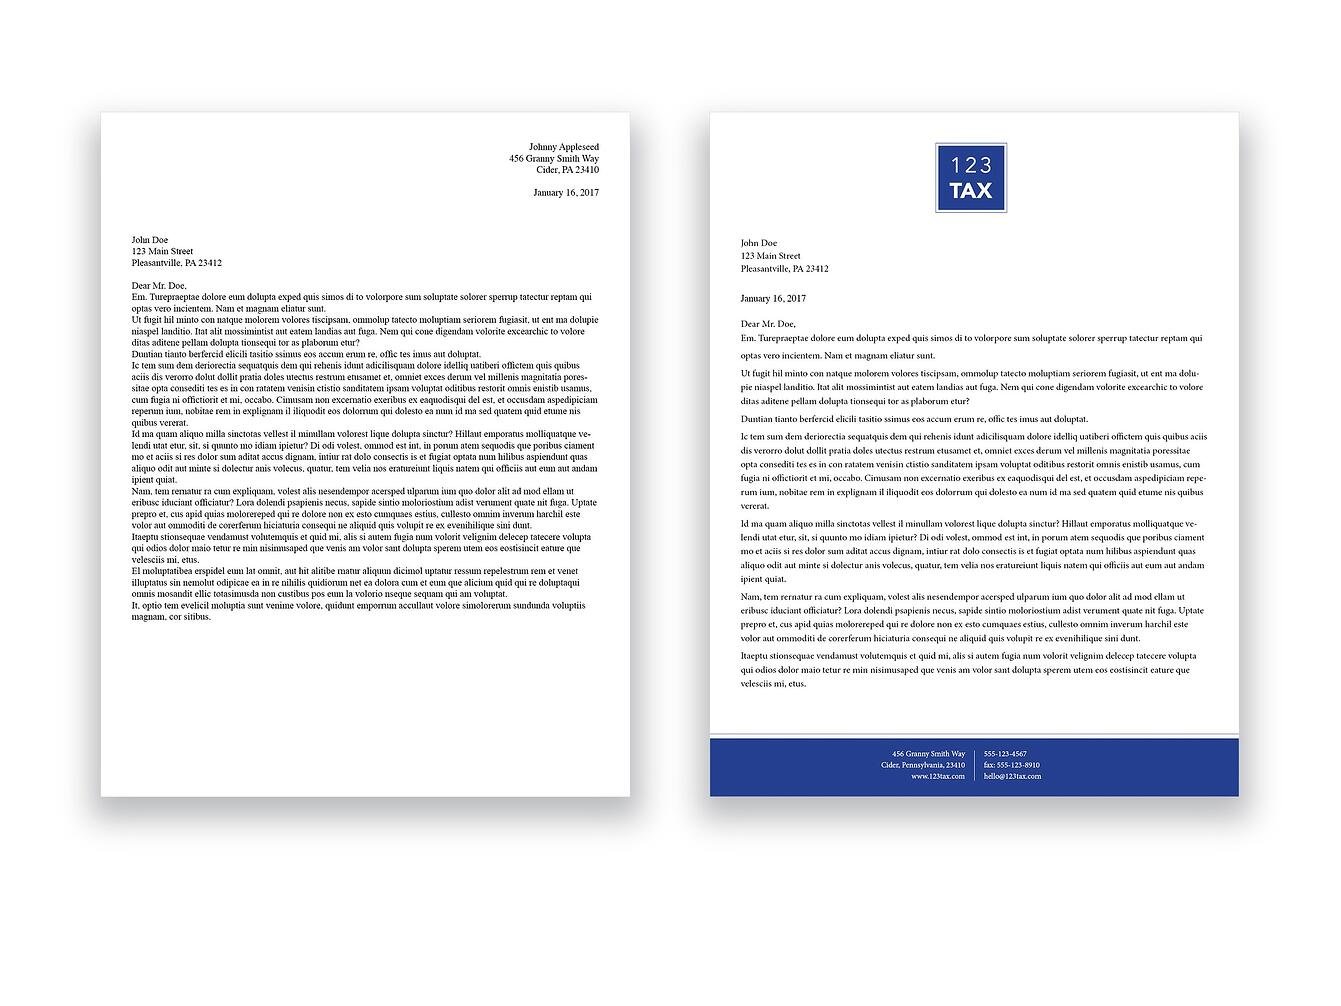 original-letterhead-comparison-graphic